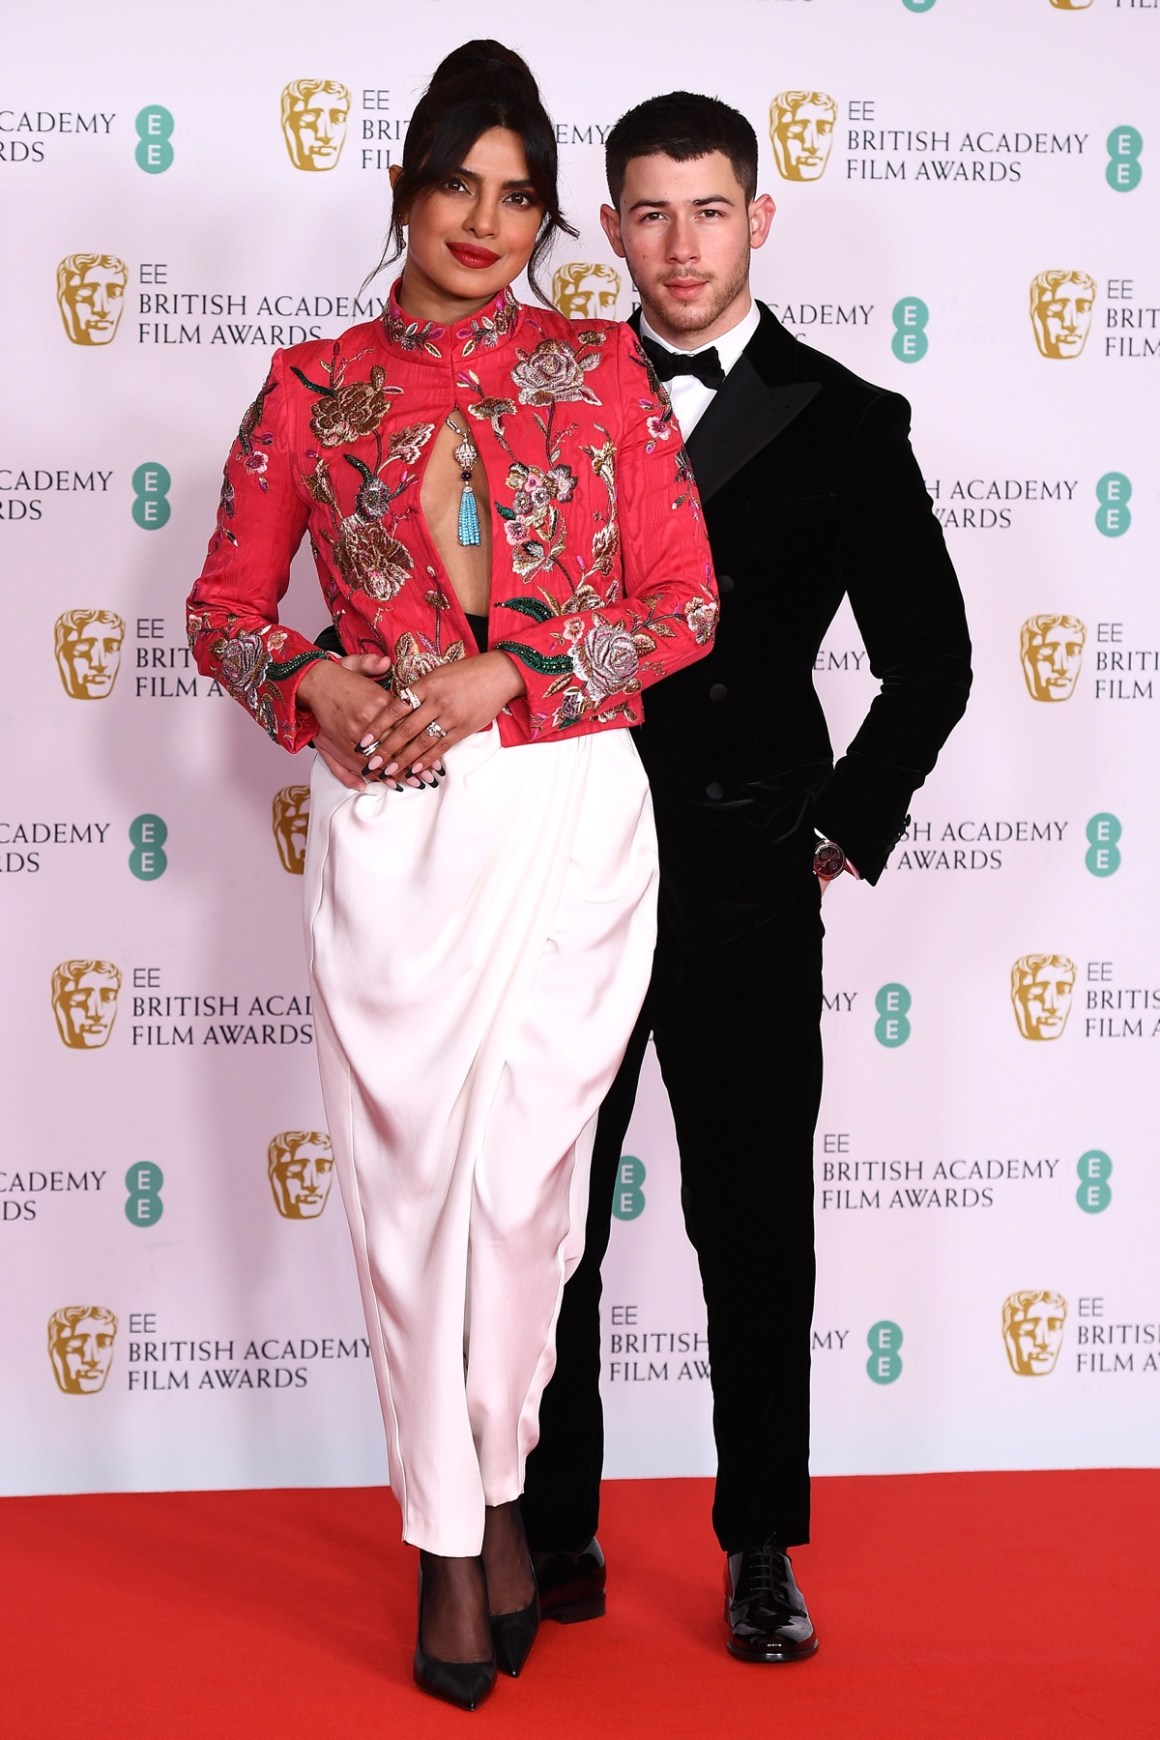 BAFTAs EE British Academy Film Awards 2021 - Arrivals